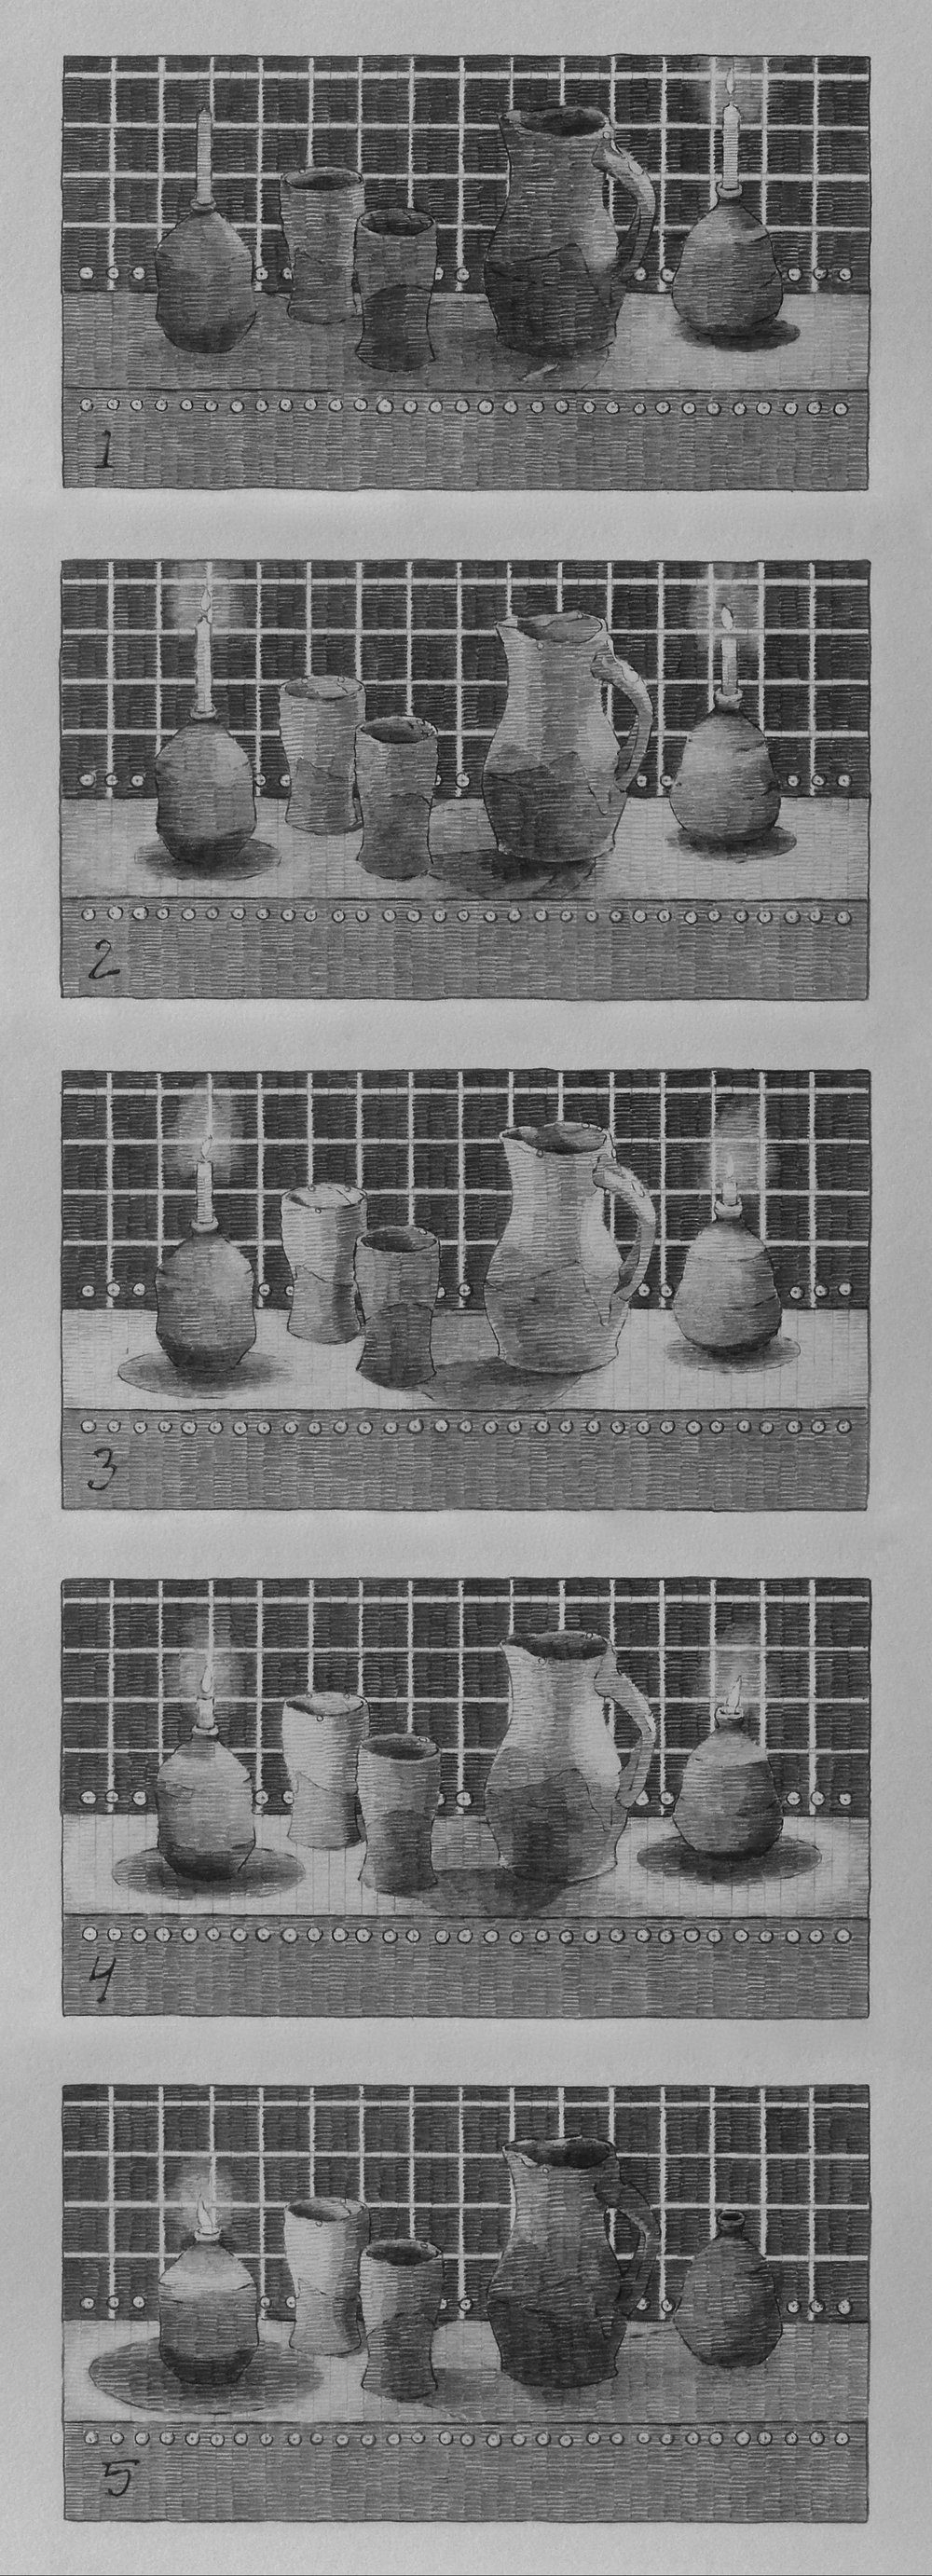 Sequence 3., Arranged